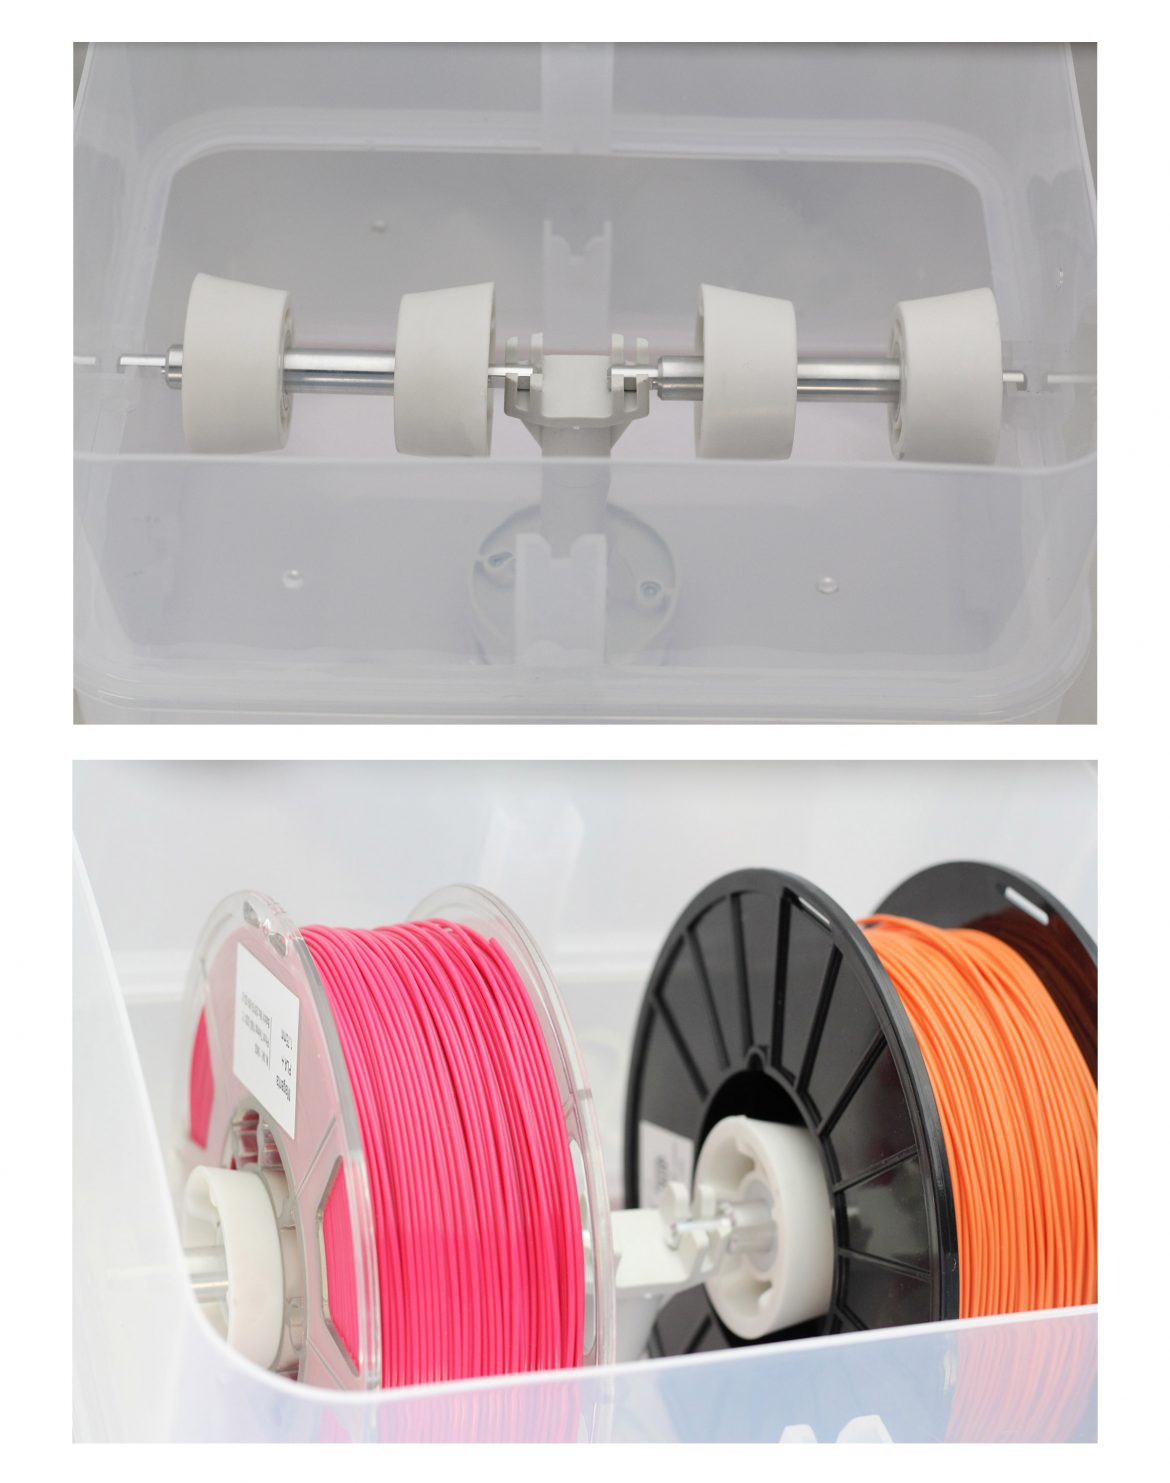 PrintDry Filament dryer version 2 3D printer Canada